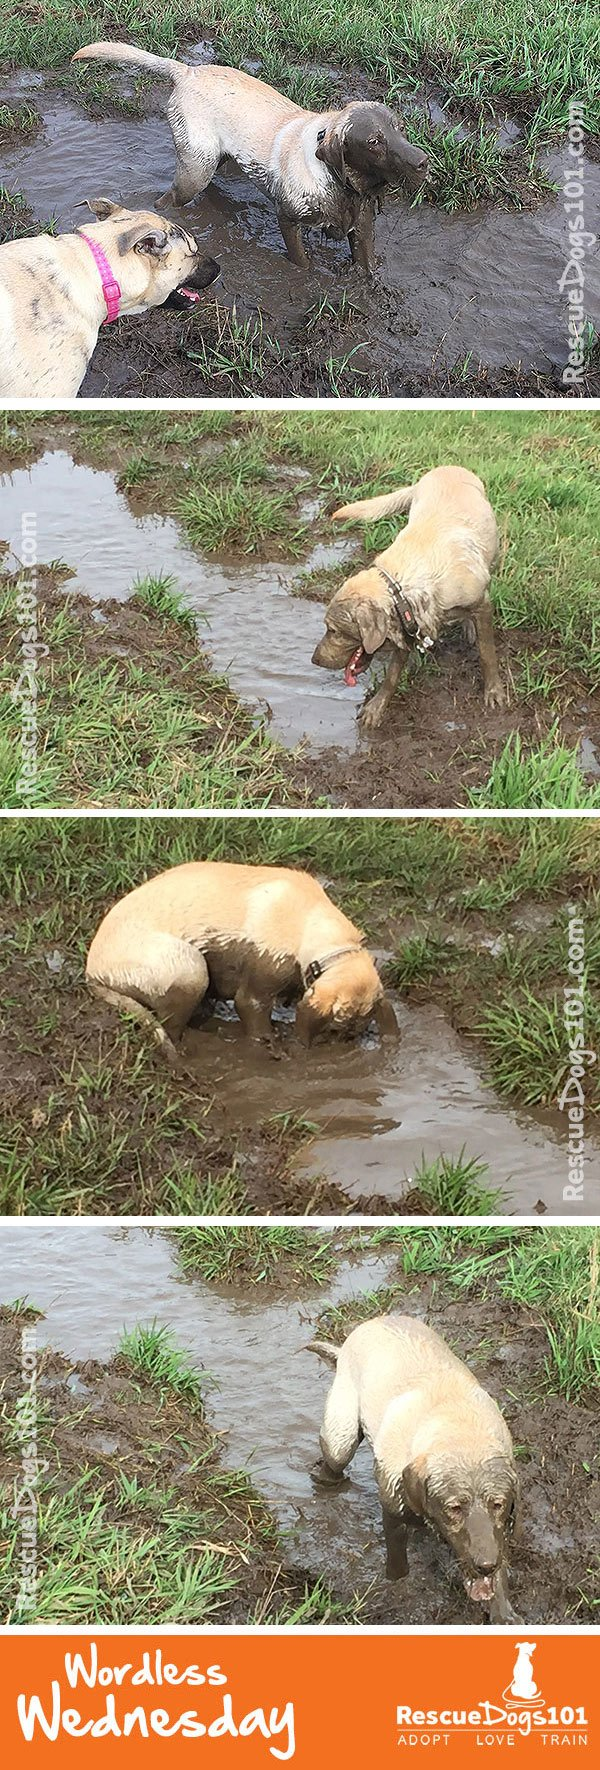 Does your dog like to play in the mud? #wordlesswednesday #rescuedogs101